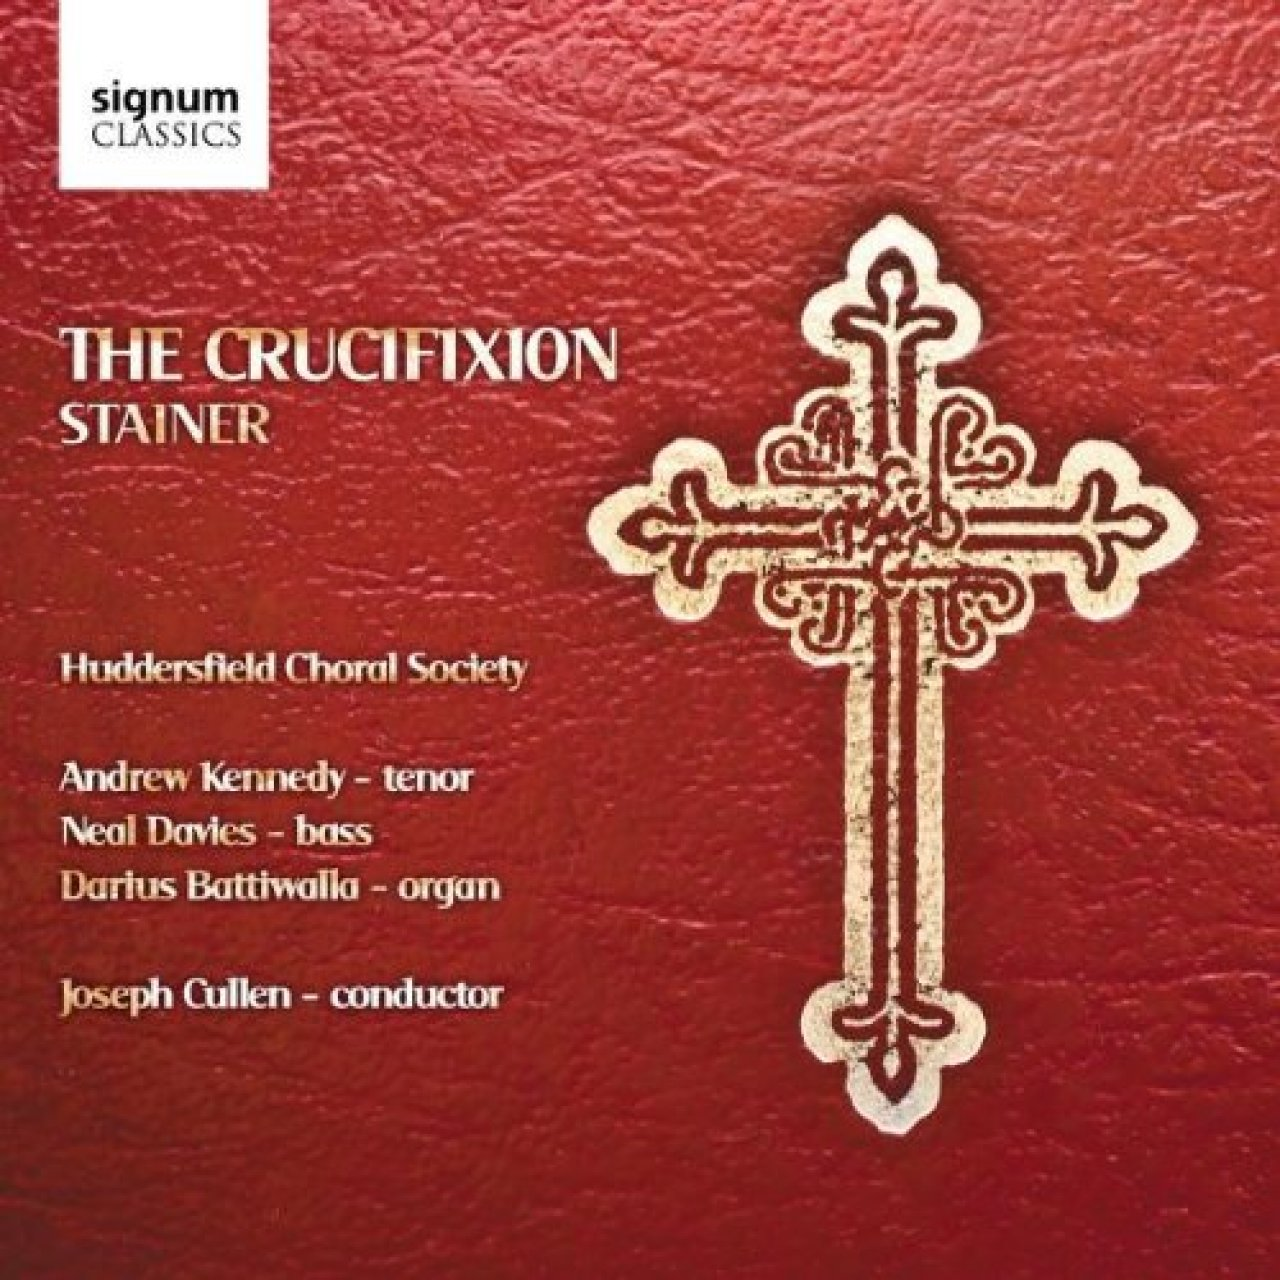 Huddersfield Choral  Society - Stainer  Crucifixion (2009)